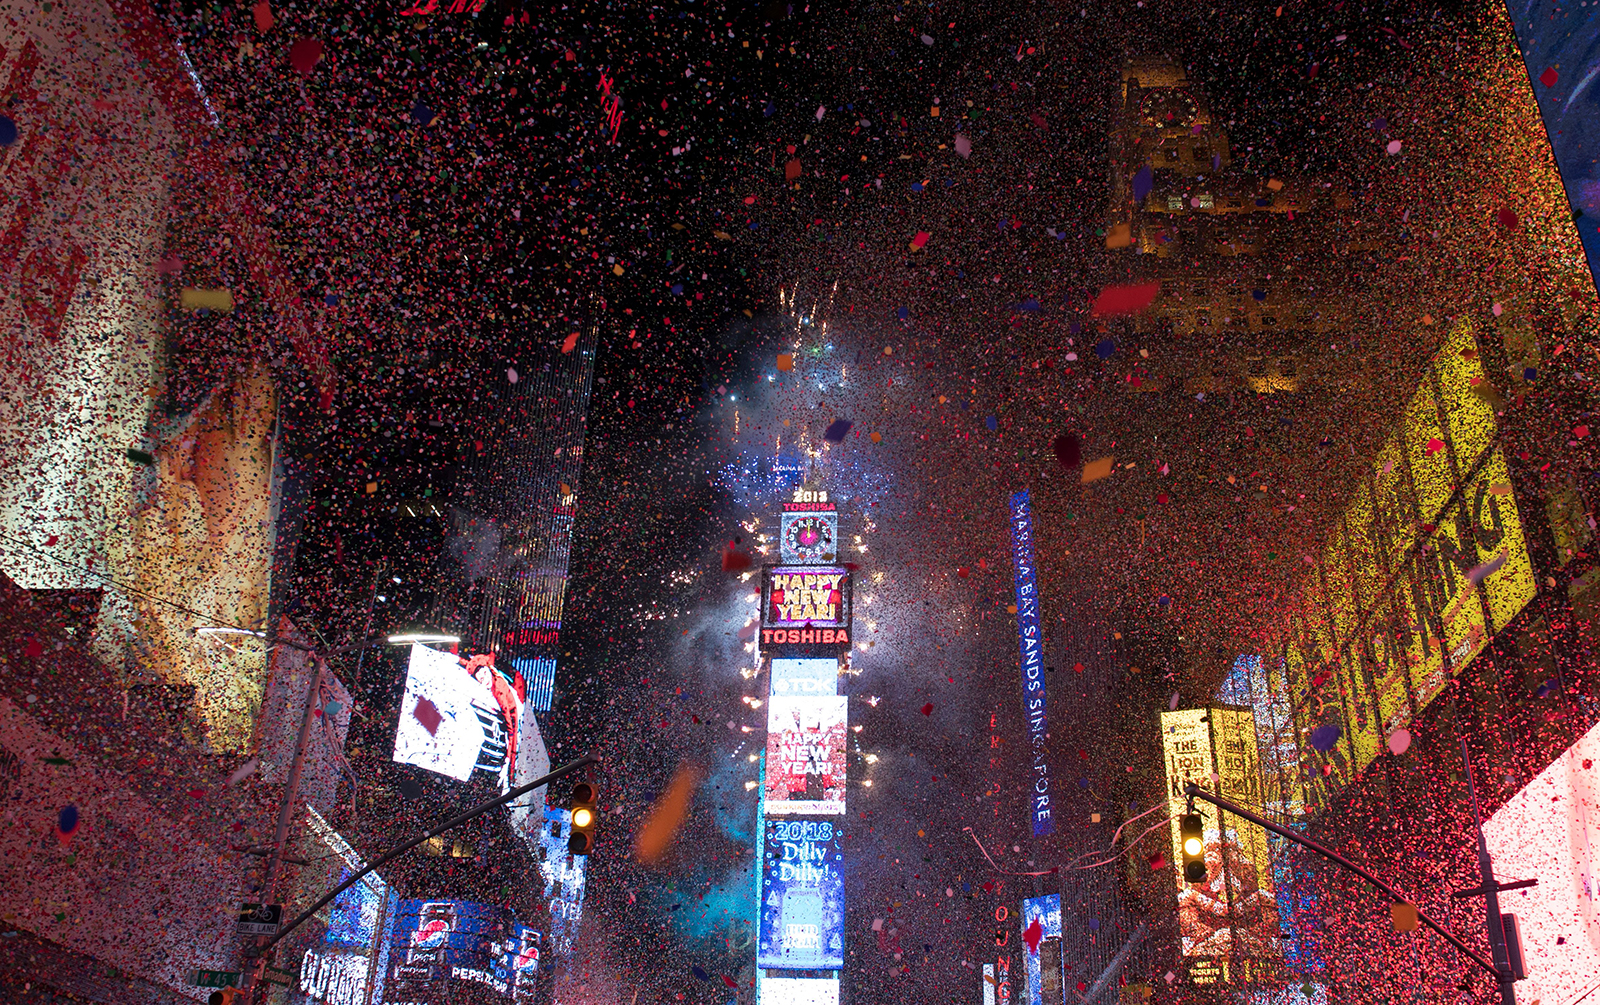 The ball drops to enter in the new year during New Year's Eve celebrations in Times Square on January 1, 2018.